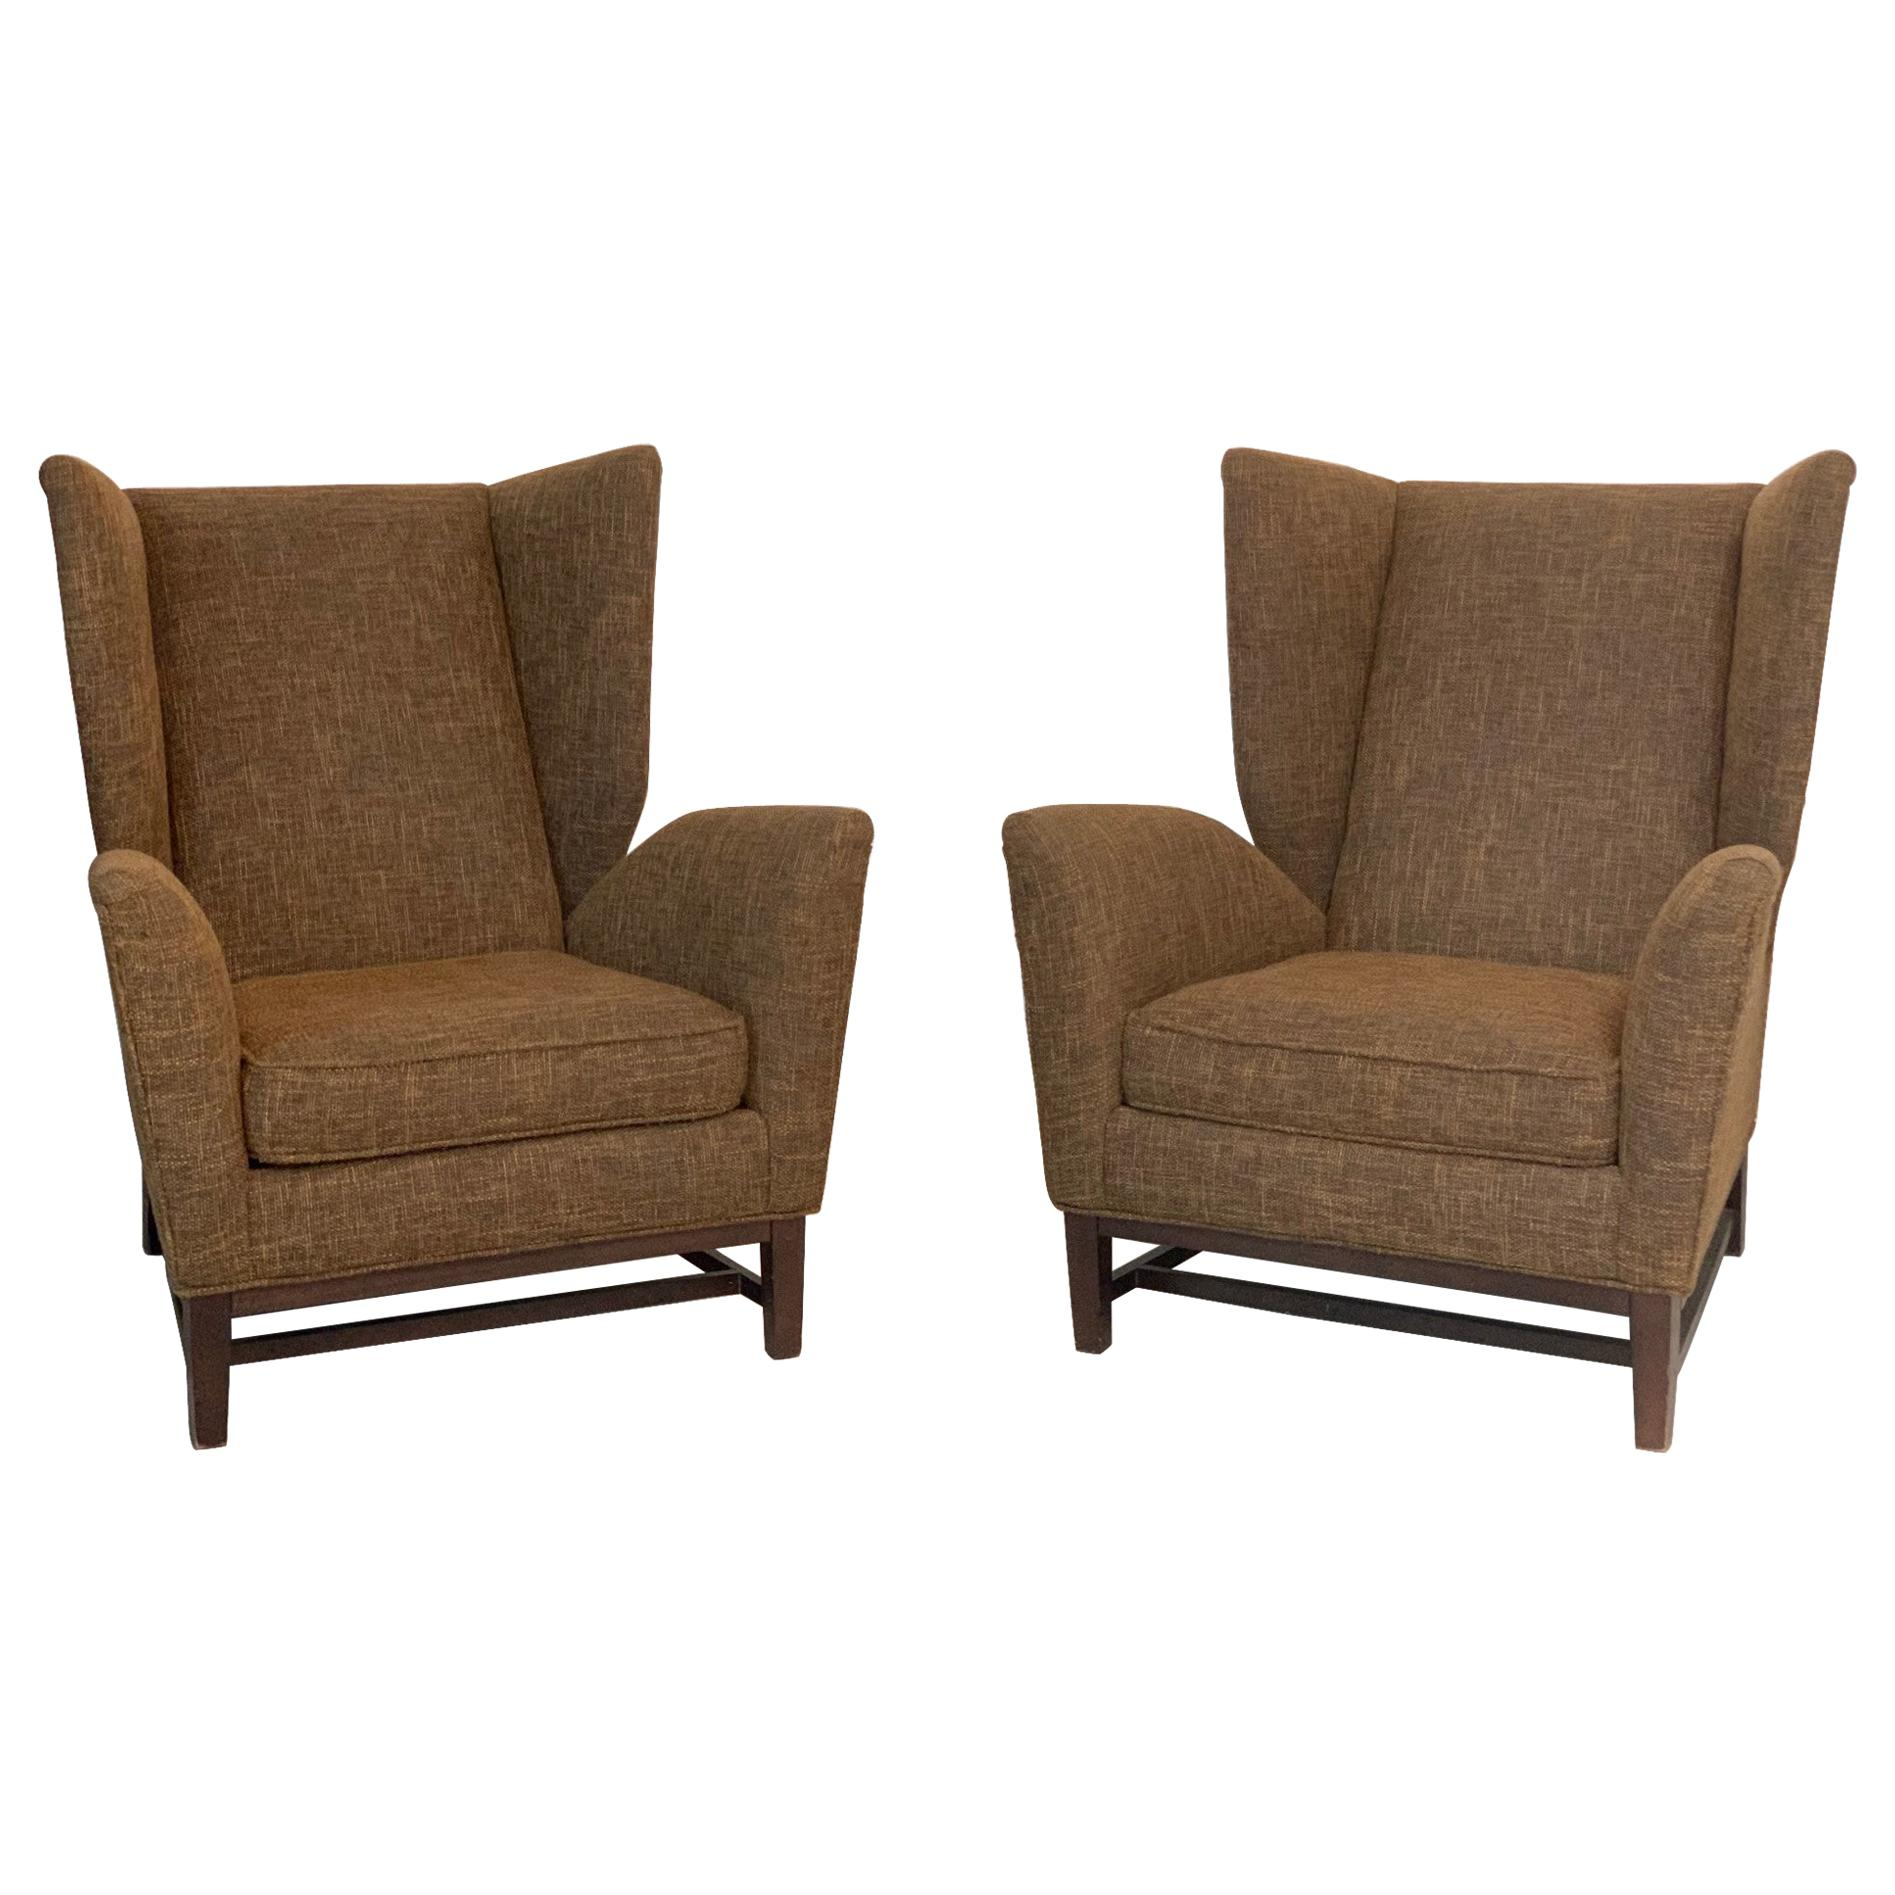 Pair of Italian Mid-Century Modern Wingback Lounge Chairs